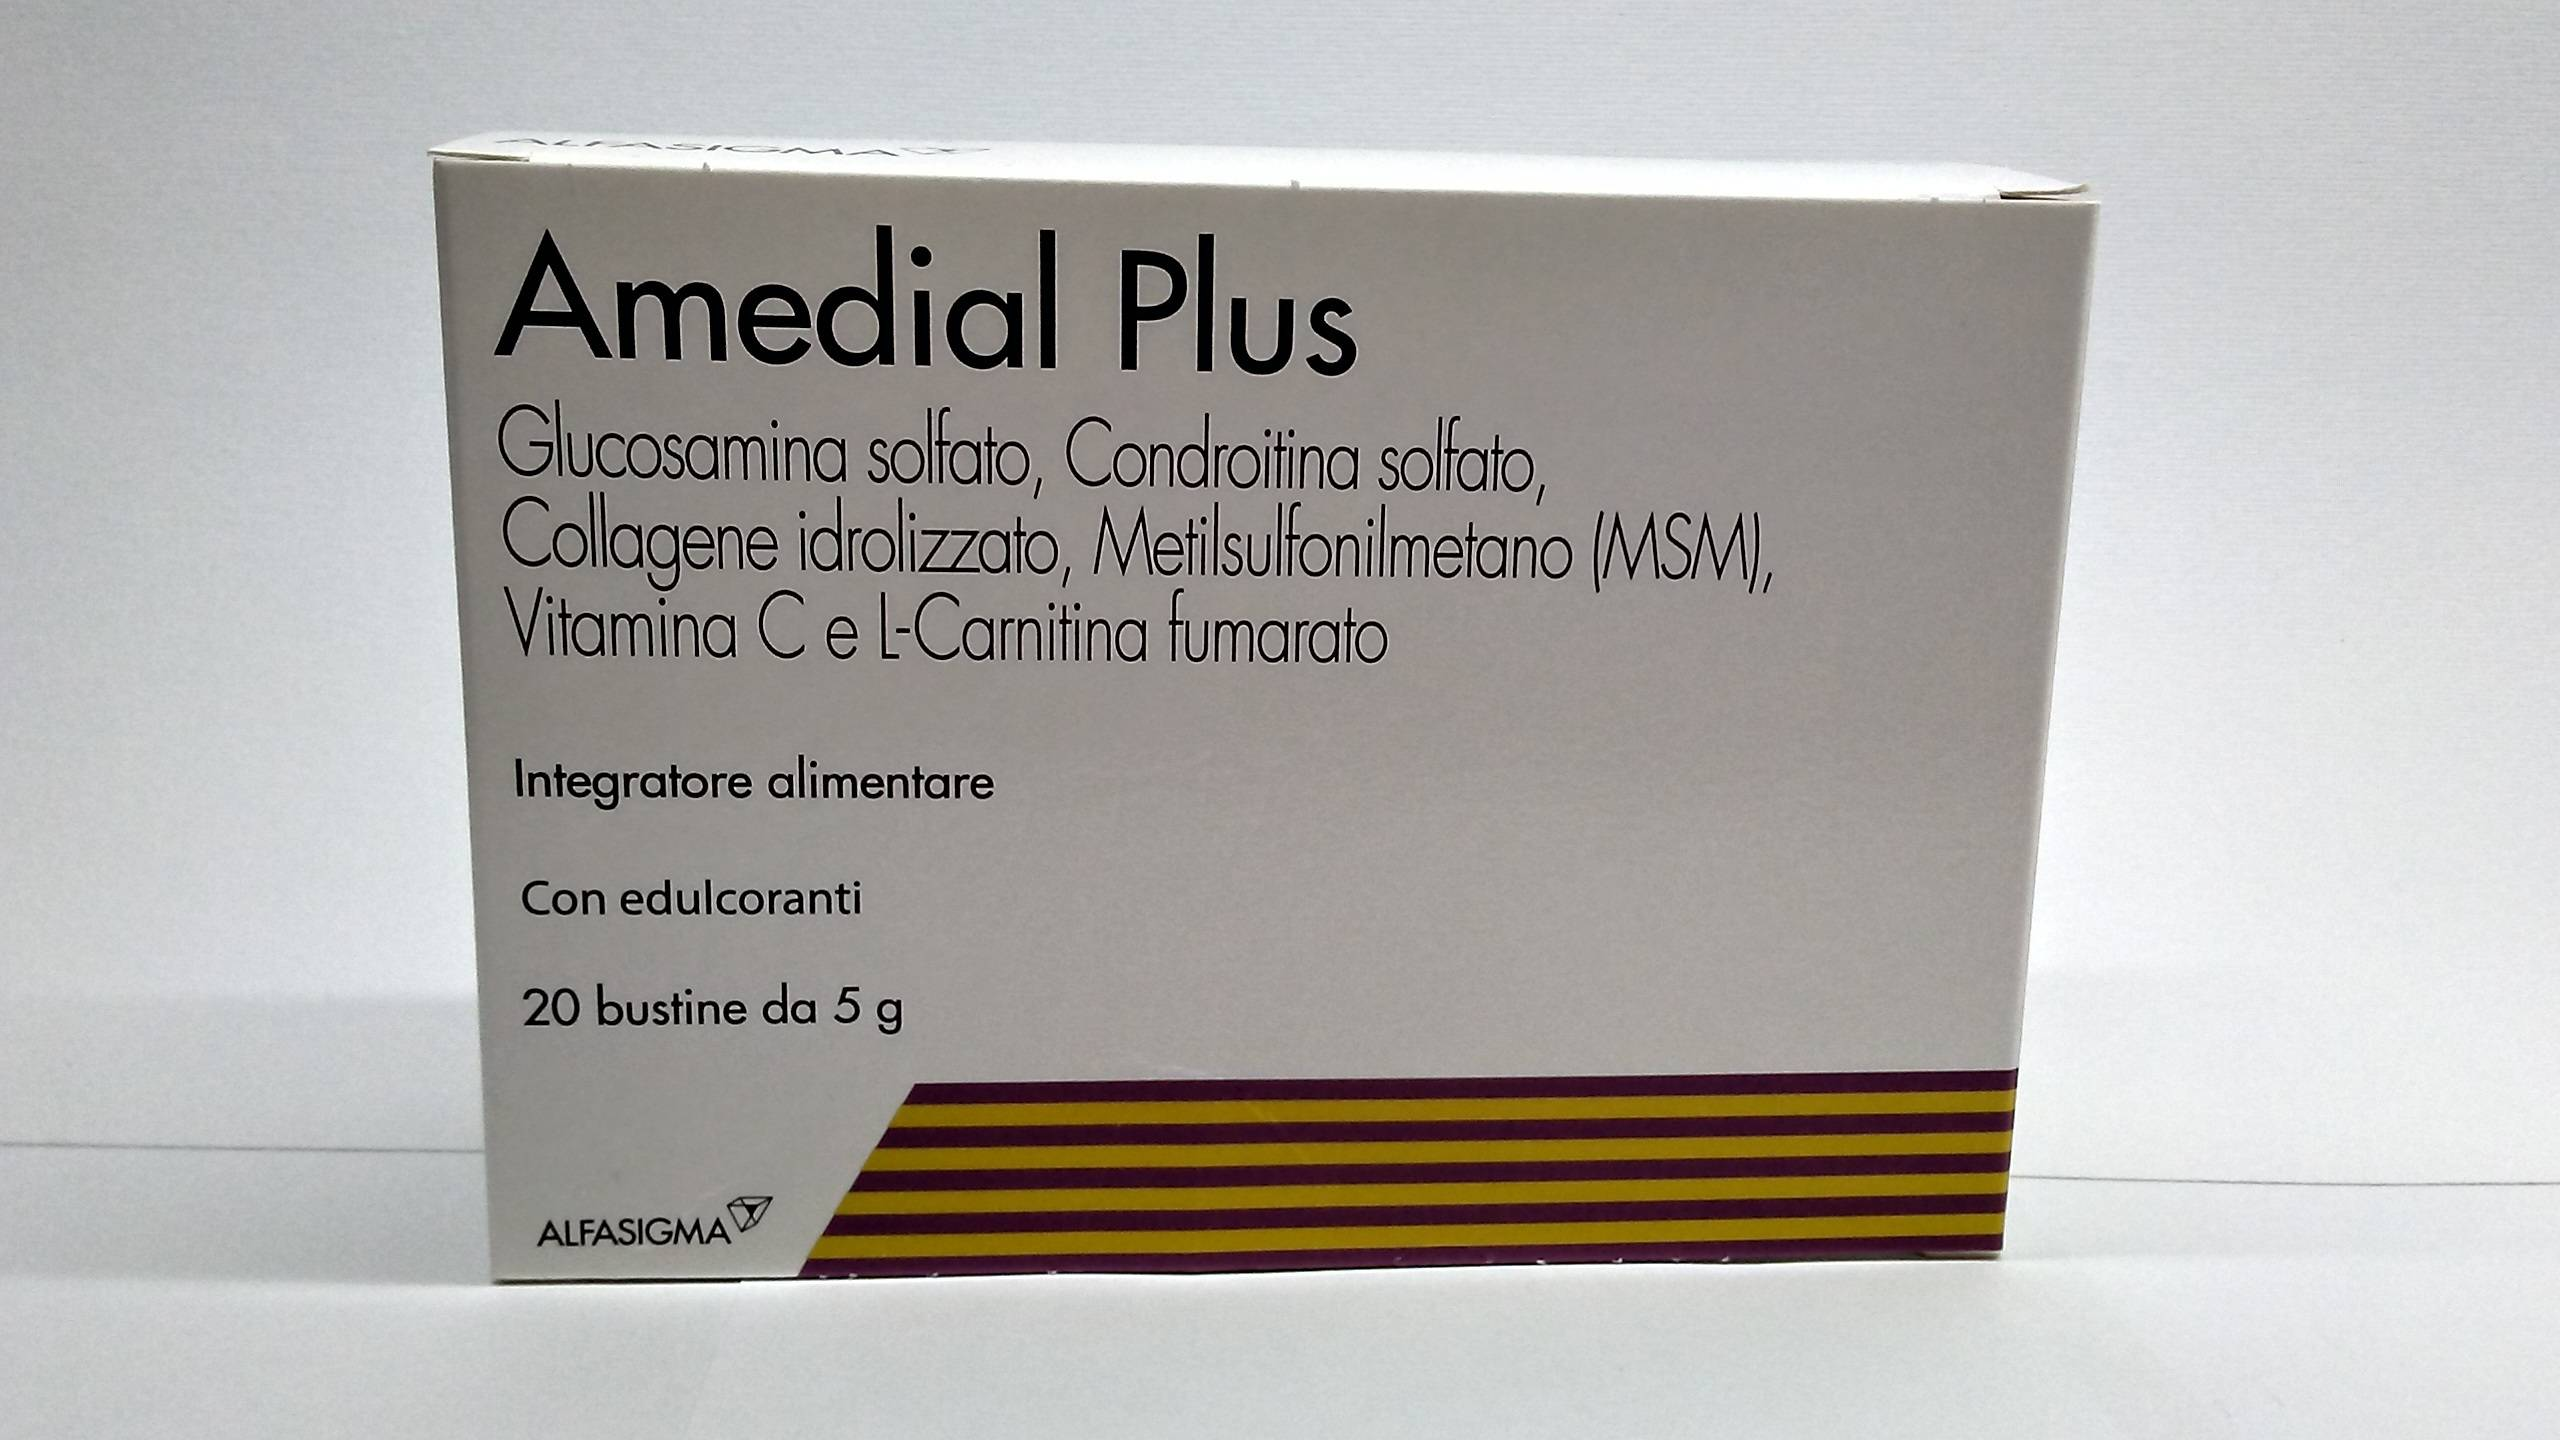 ALFASIGMA SPA Amedial Plus 20bust